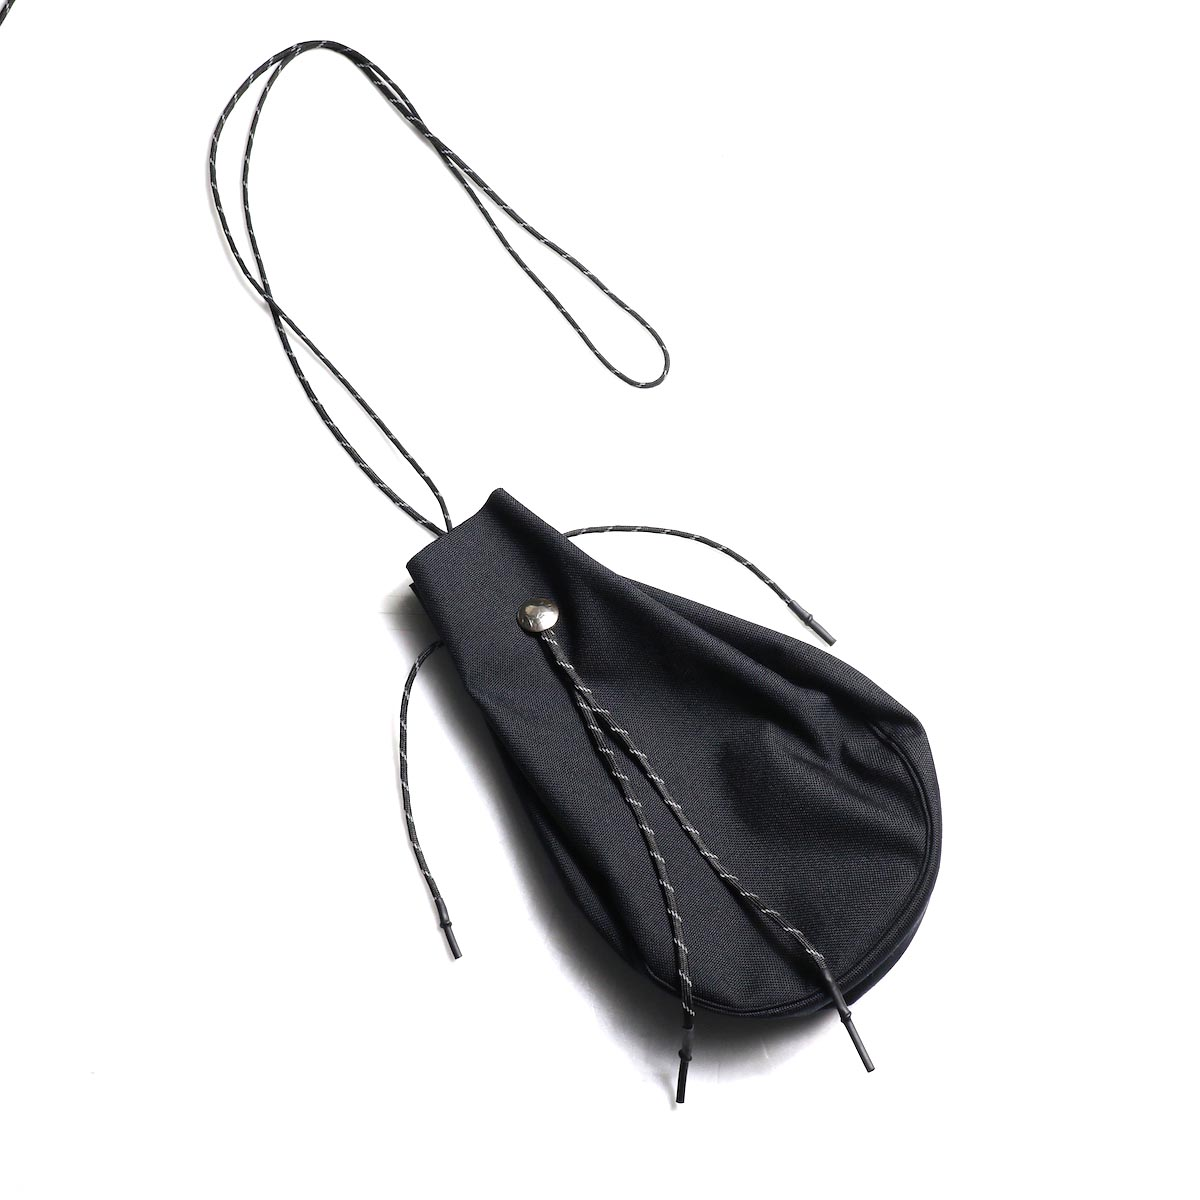 吉岡衣料店 / drawstring bag -L-. w/concho. (Black)